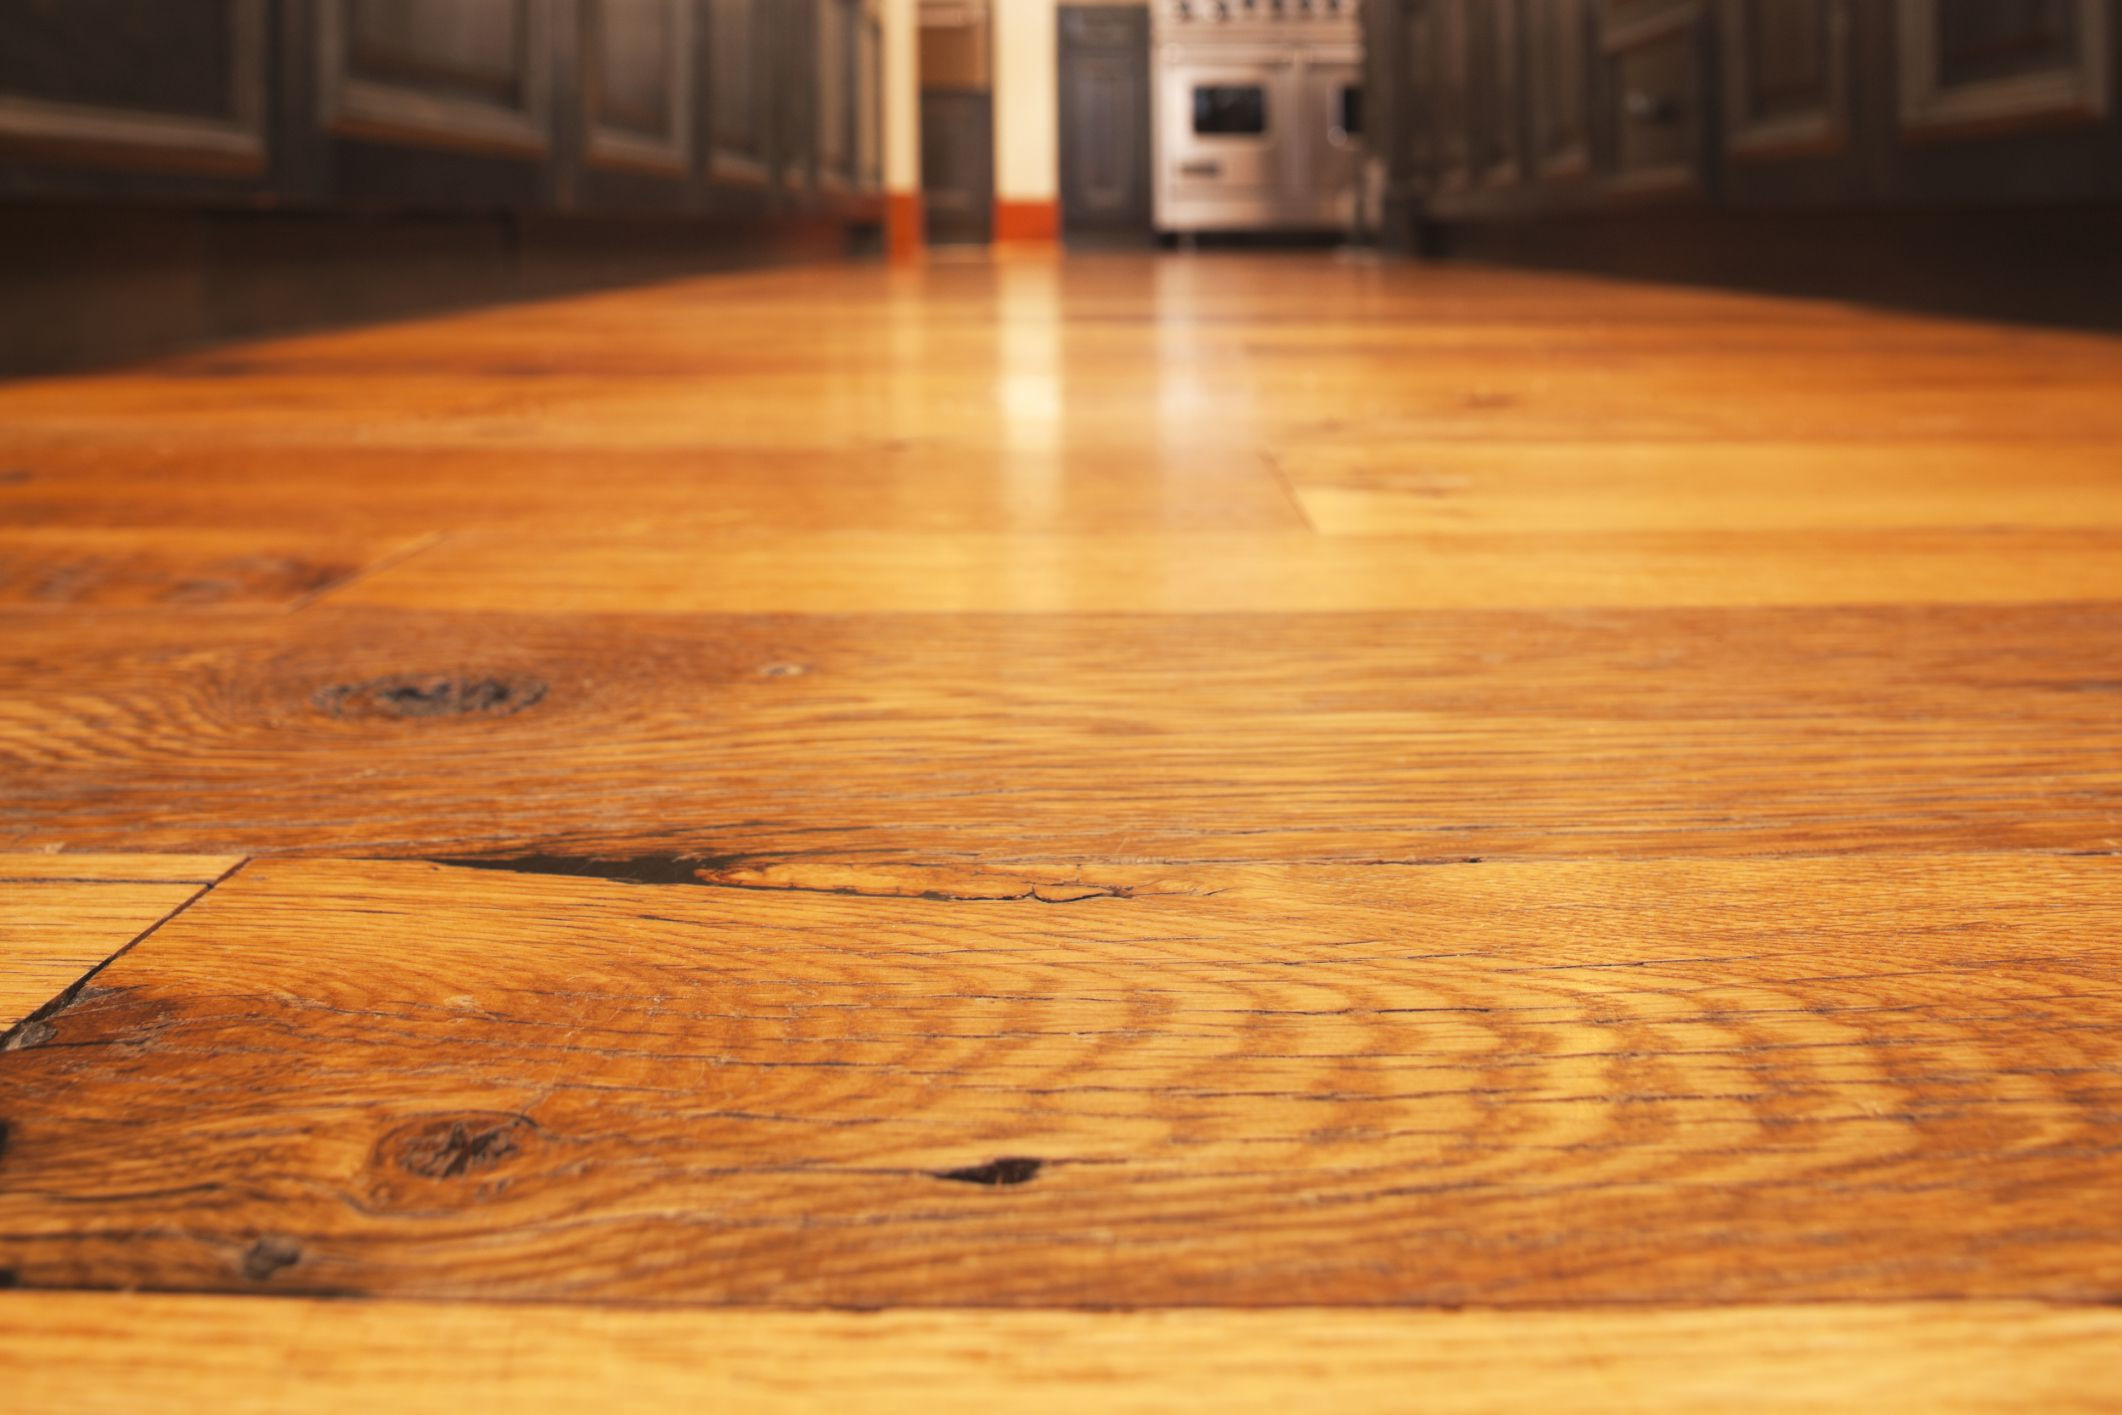 3 4 5 hardwood flooring of why a microbevel is on your flooring pertaining to wood floor closeup microbevel 56a4a13f5f9b58b7d0d7e5f4